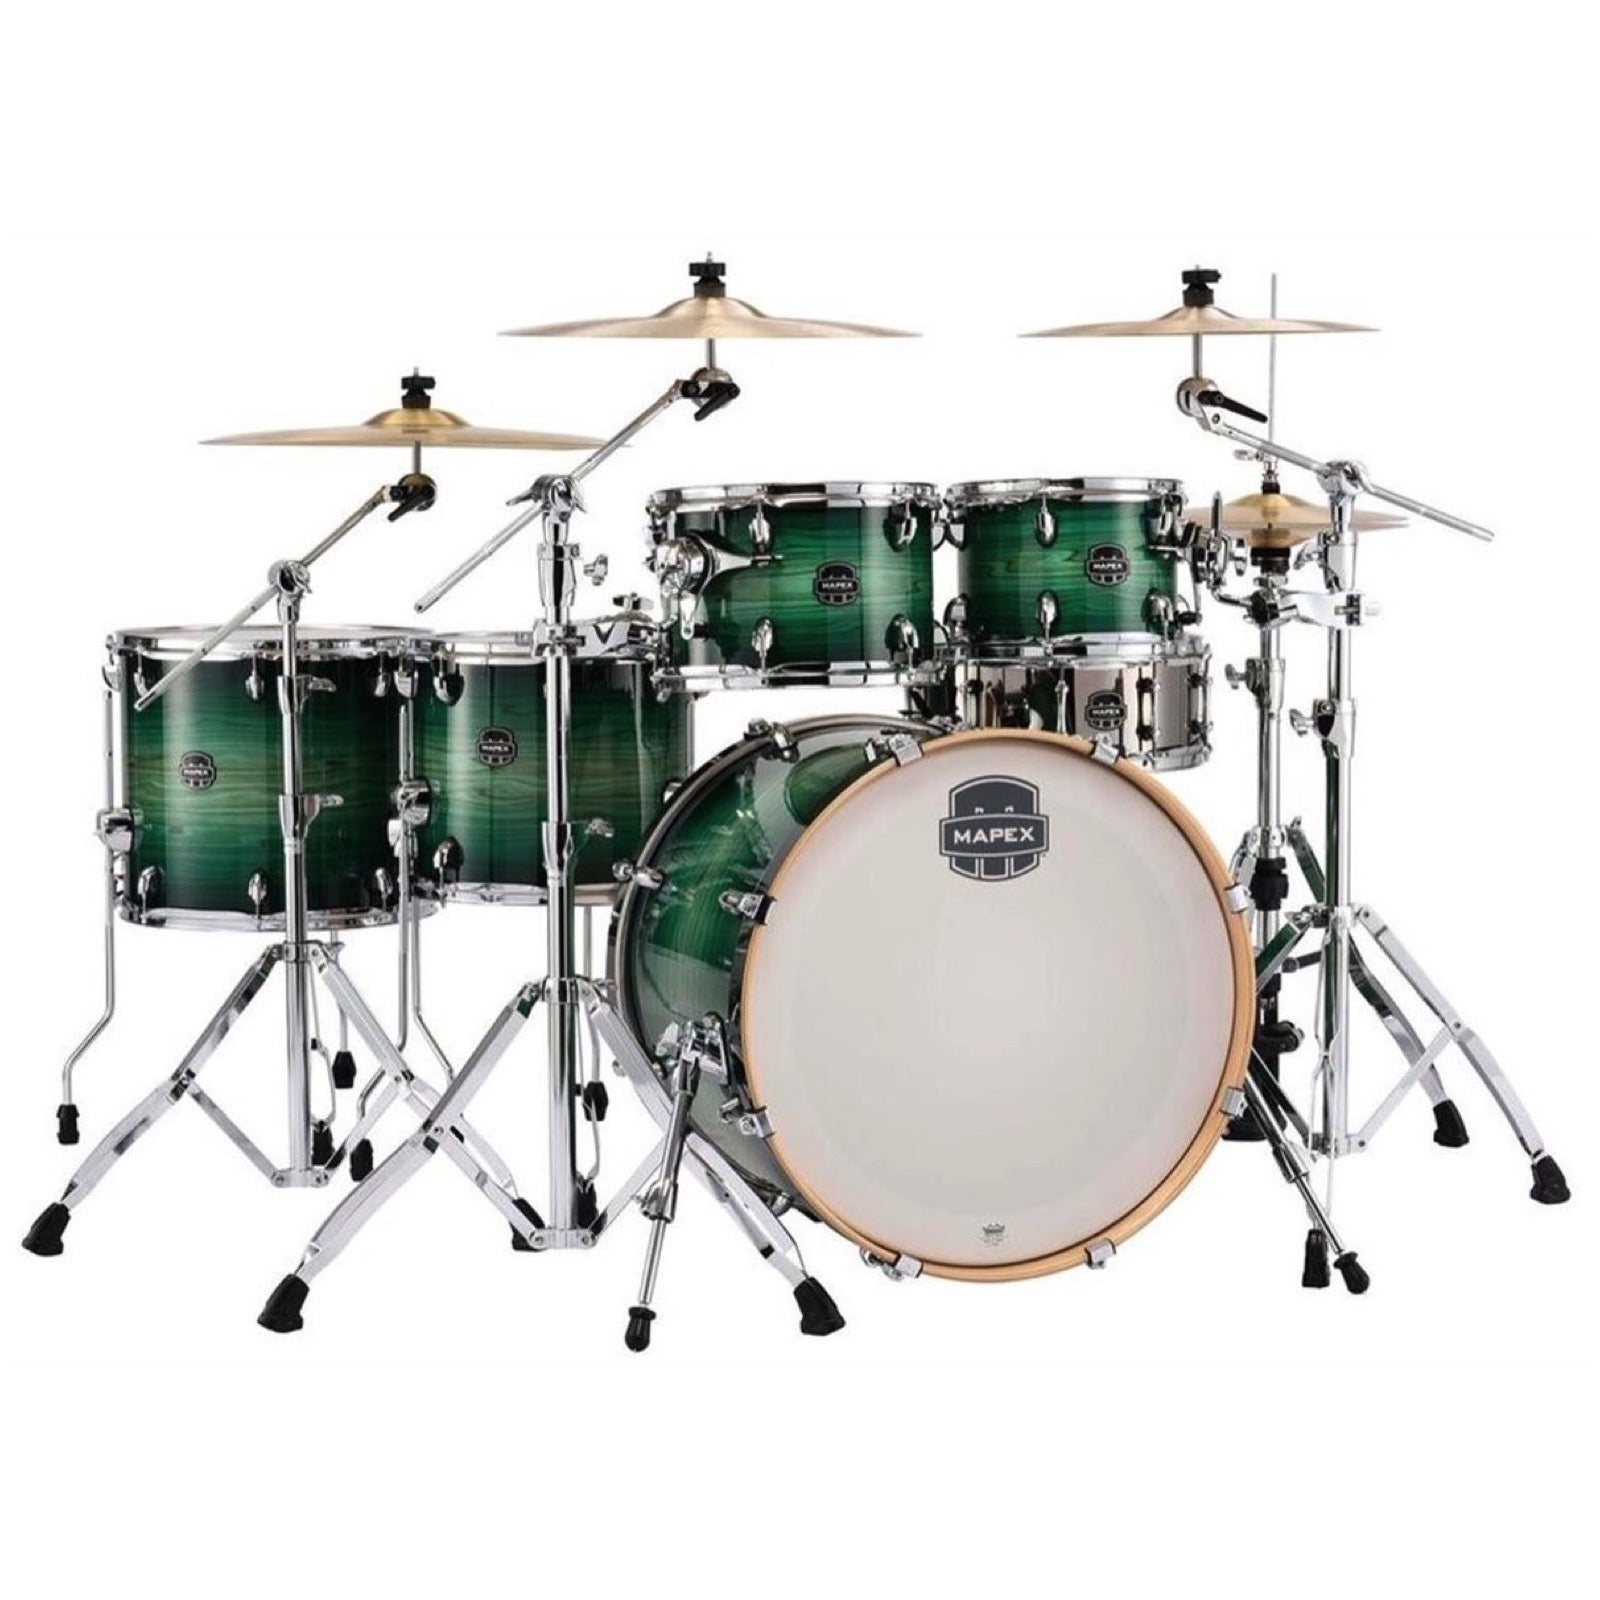 Mapex Armory Studioease Fast Drum Shell Kit, 6-Piece, Emerald Burst